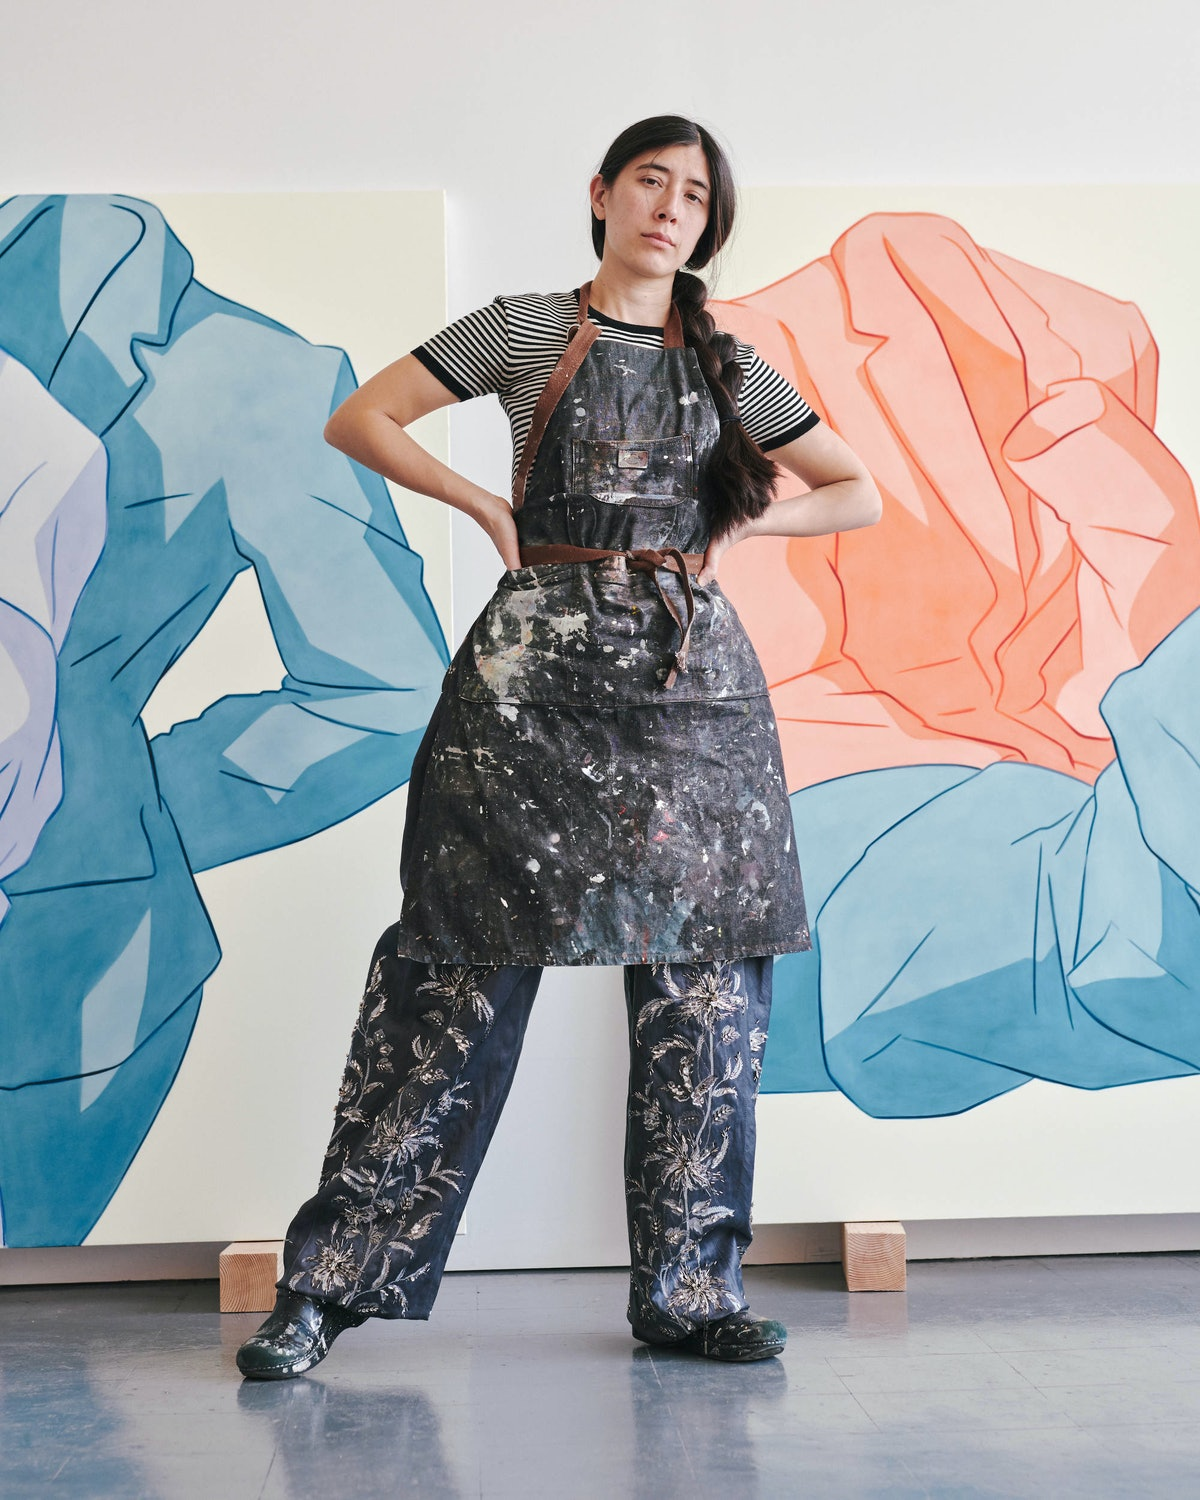 Ivy Haldeman Louis Vuitton T-shirt and pants; her own apron and shoes in front of two paintings.